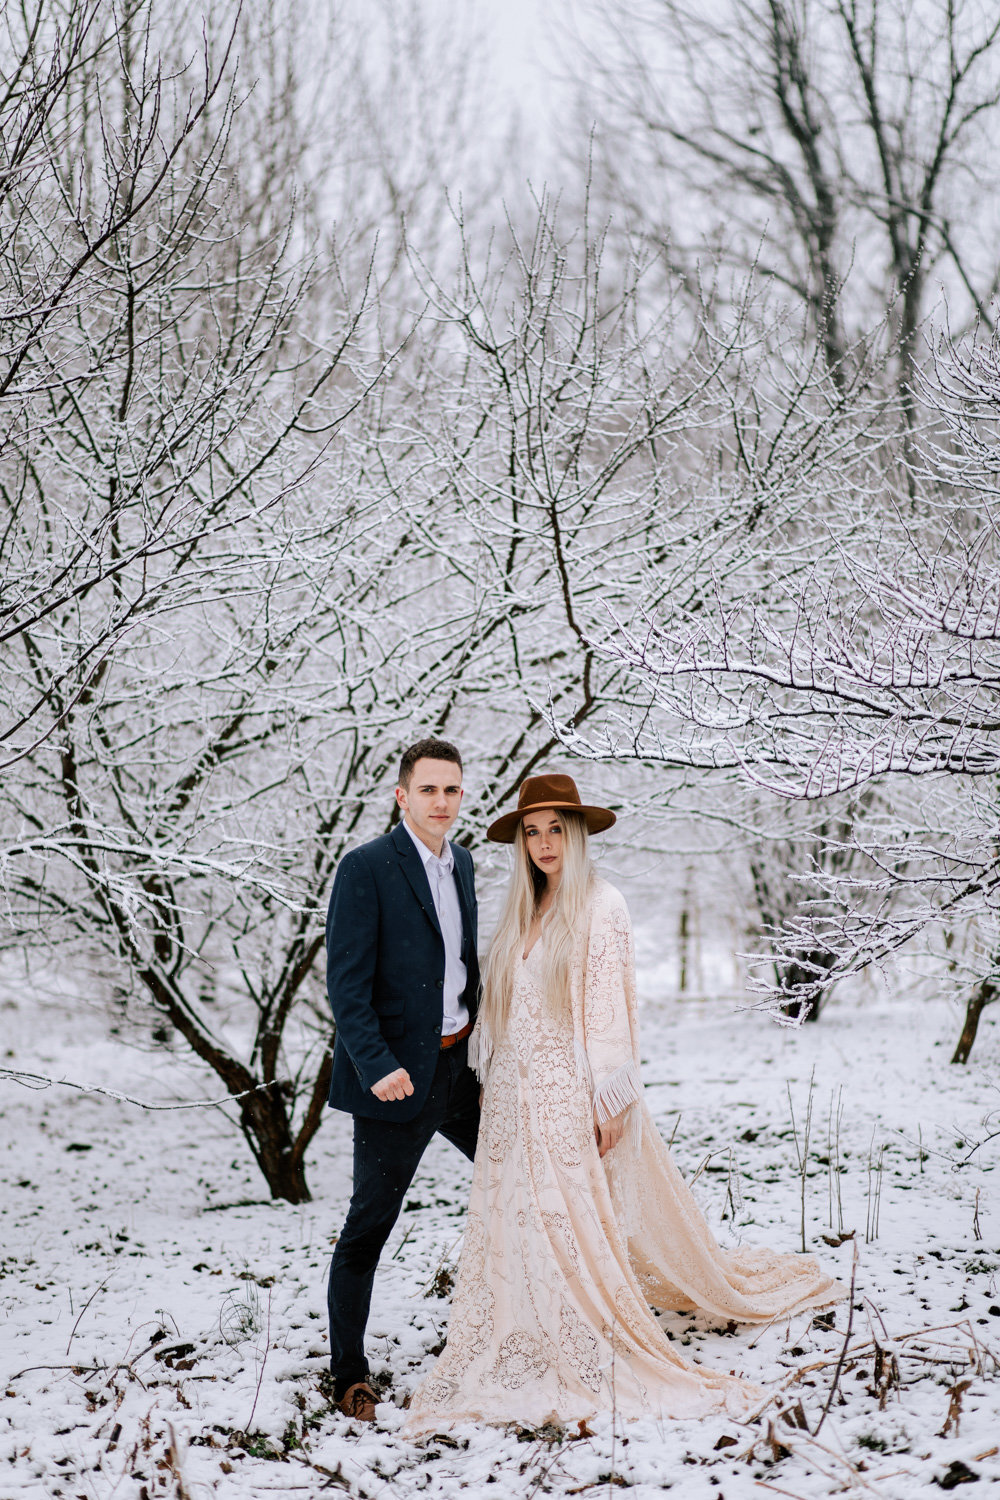 Snowy-surprise-engagement-louisville-kentucky-52